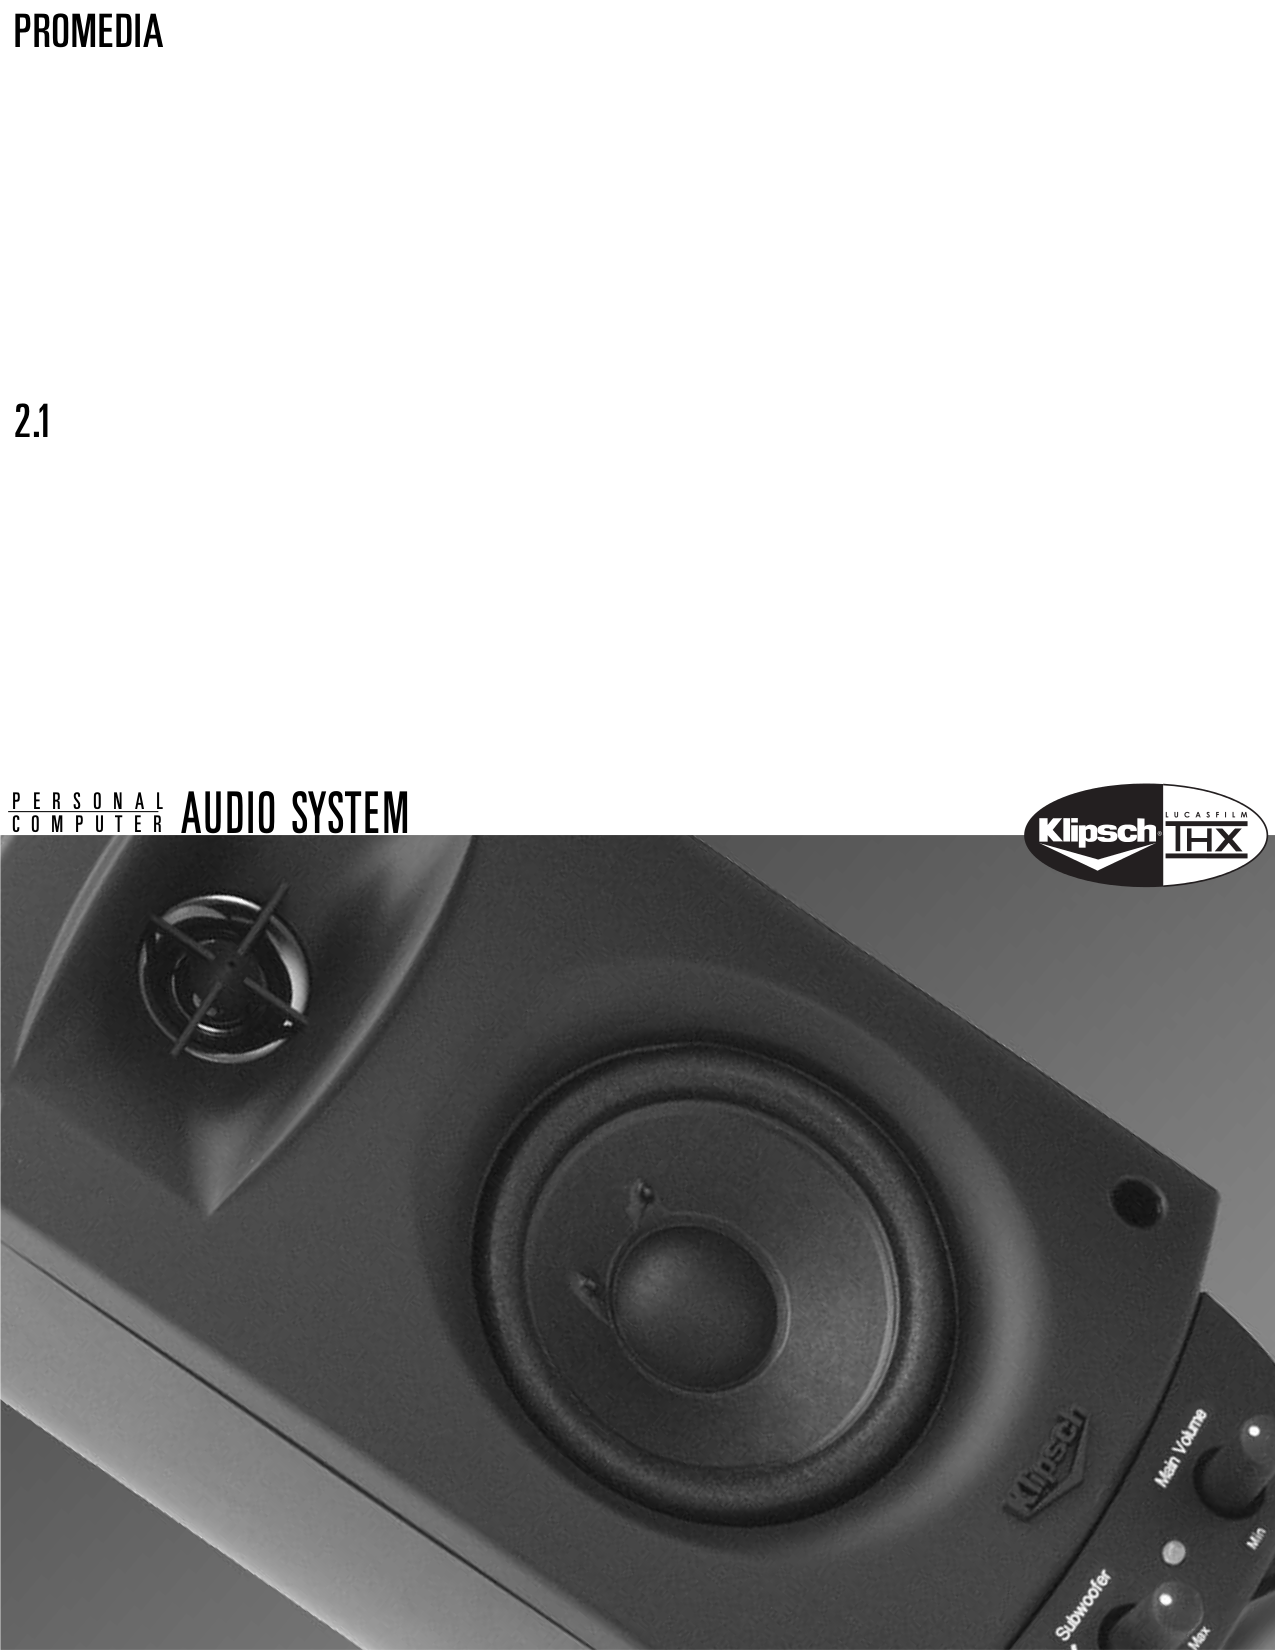 Pdf Manual For Klipsch Speaker Promedia 21 2 1 Wiring Diagram Page Preview